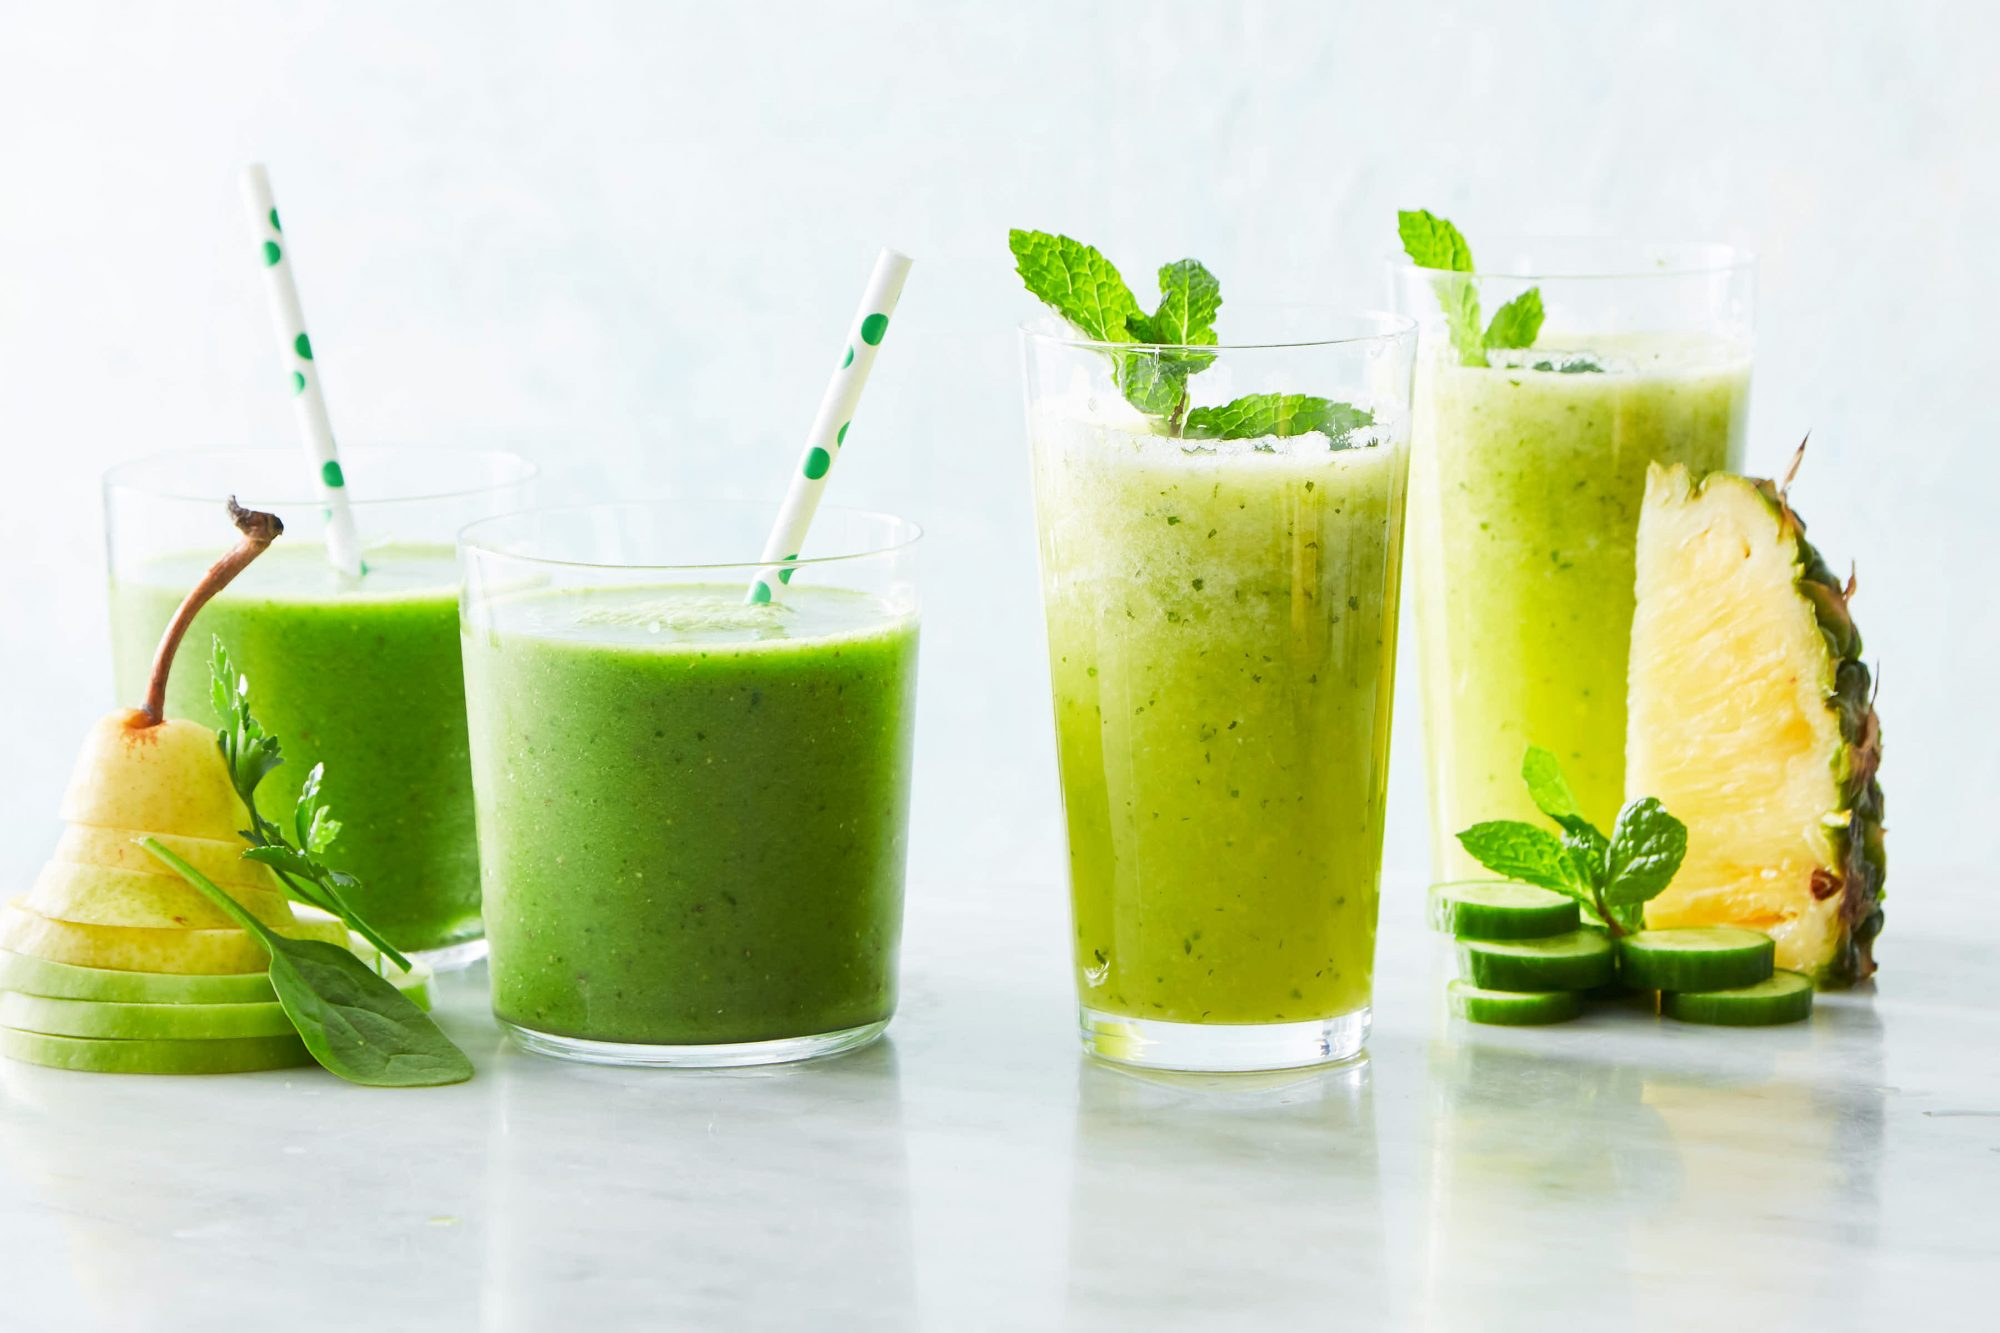 green smoothies from Marley Spoon